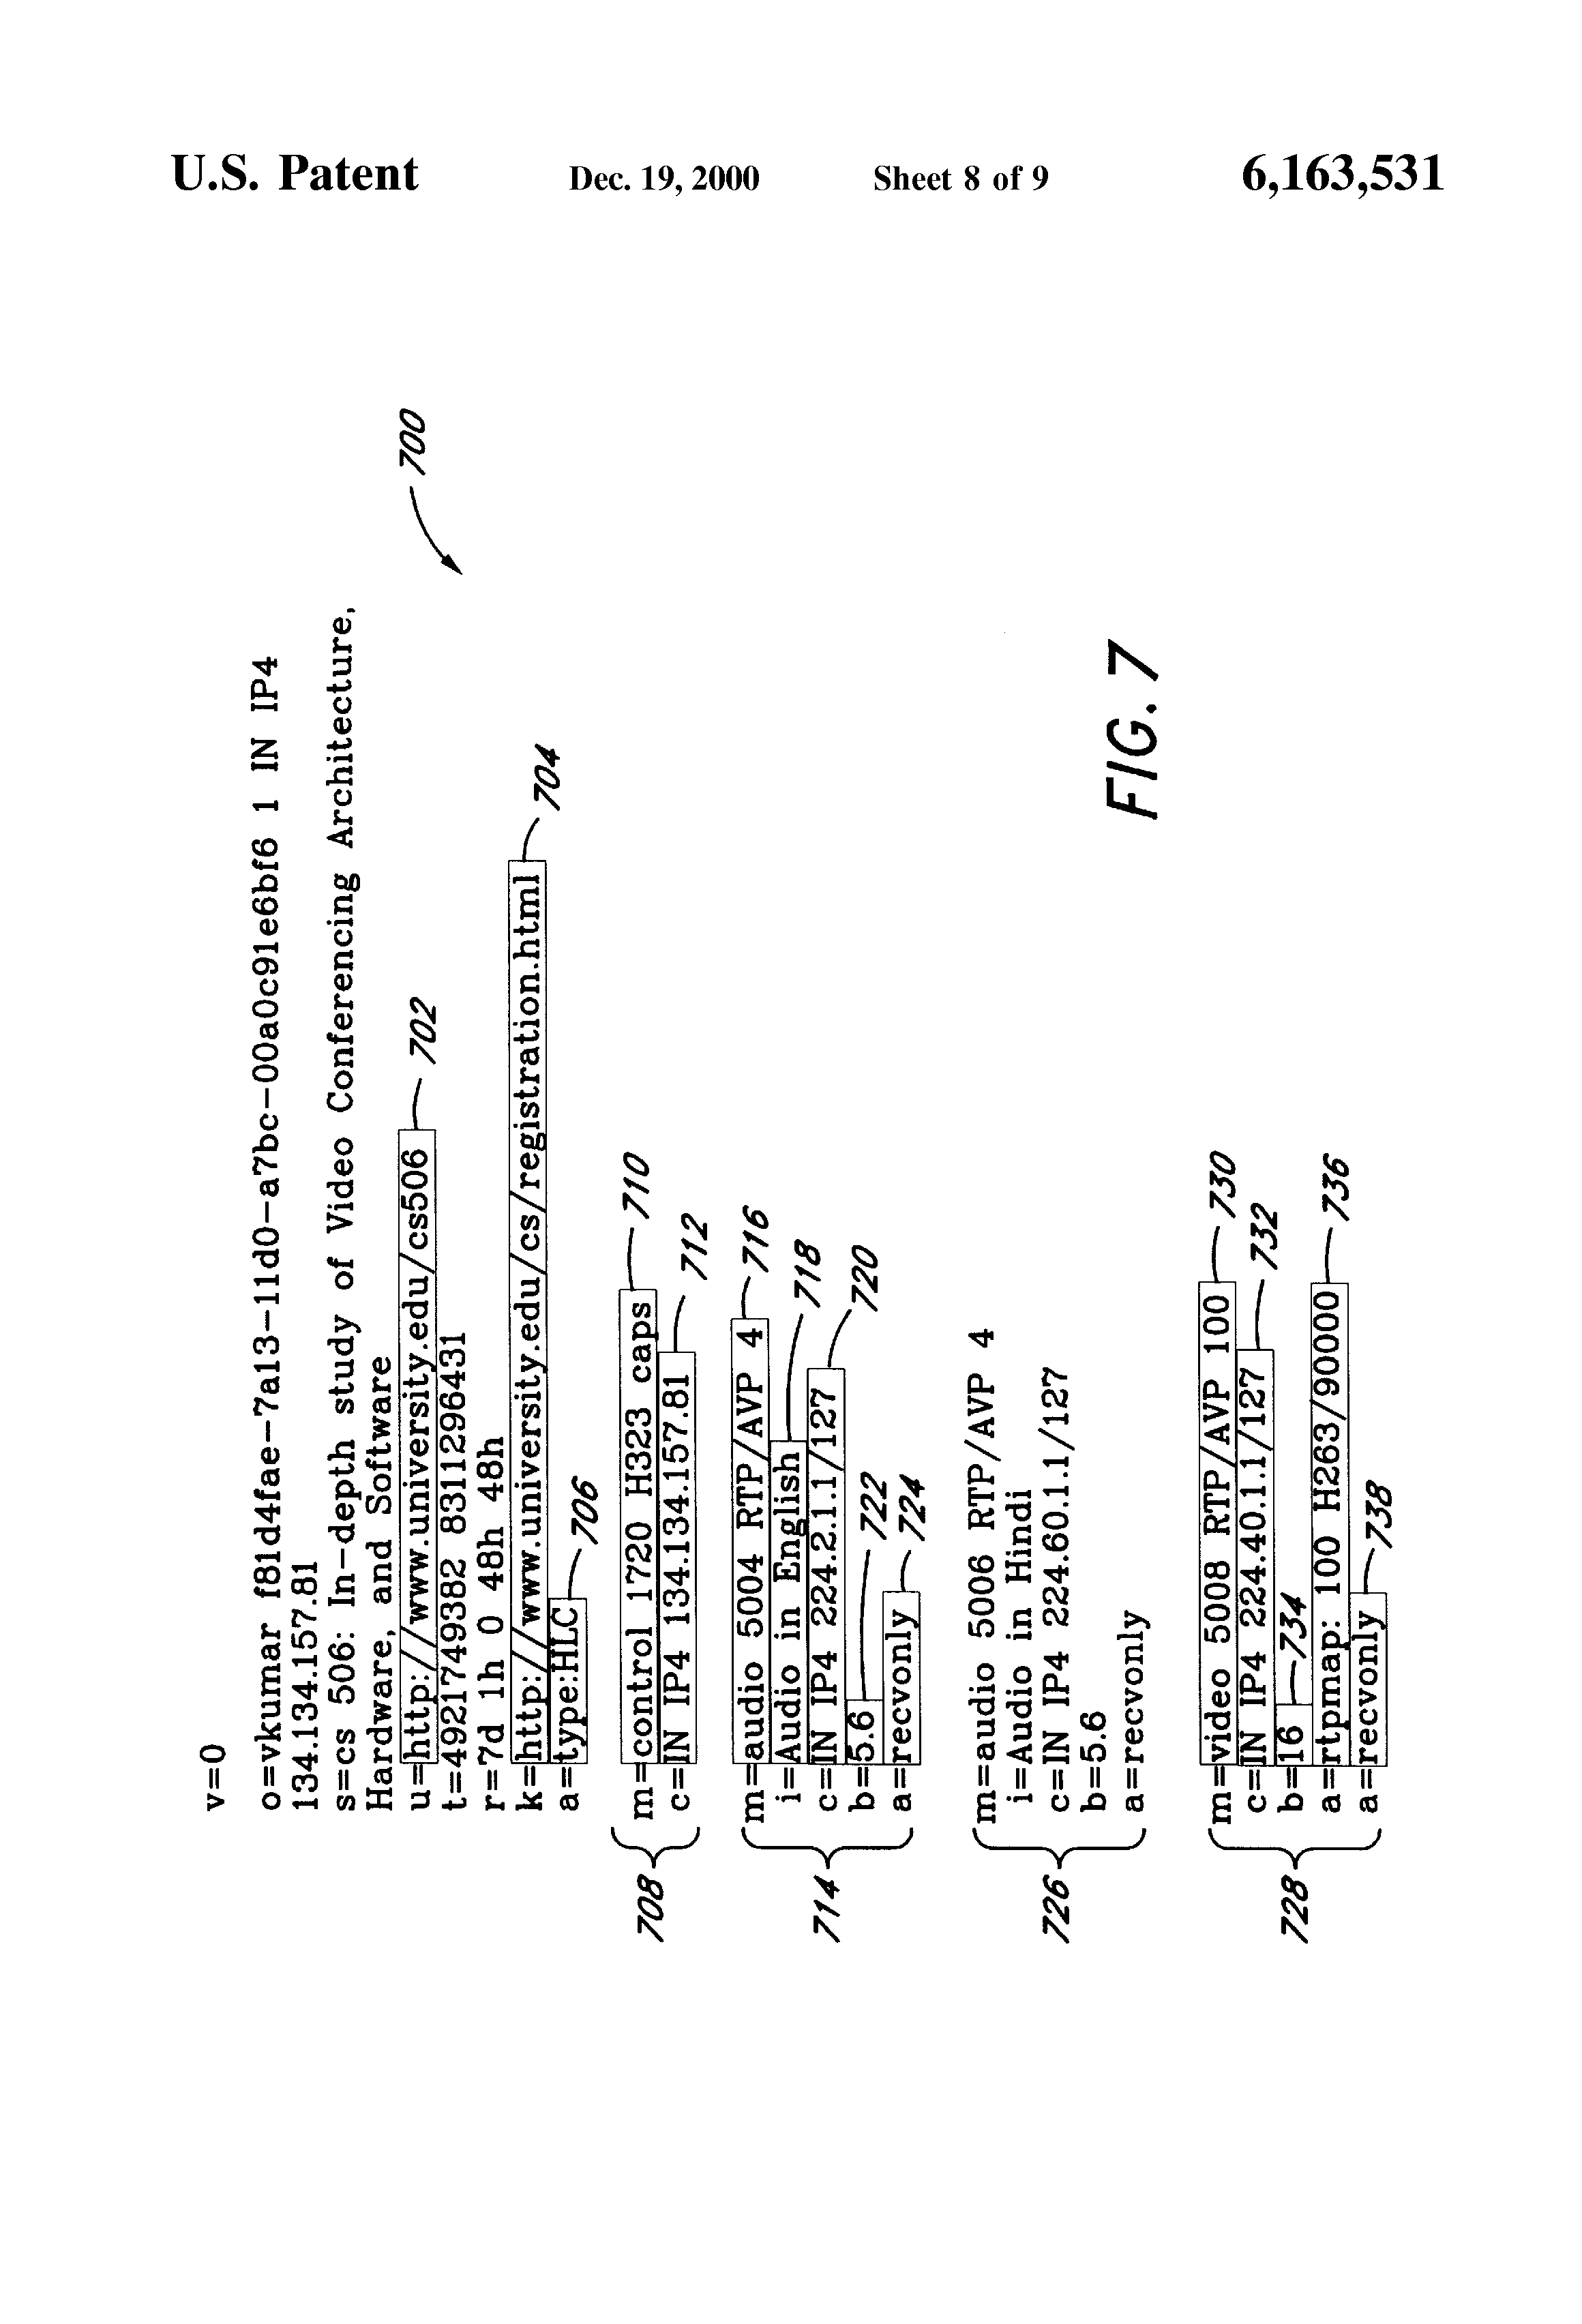 Comcast support rtp - Patent Drawing